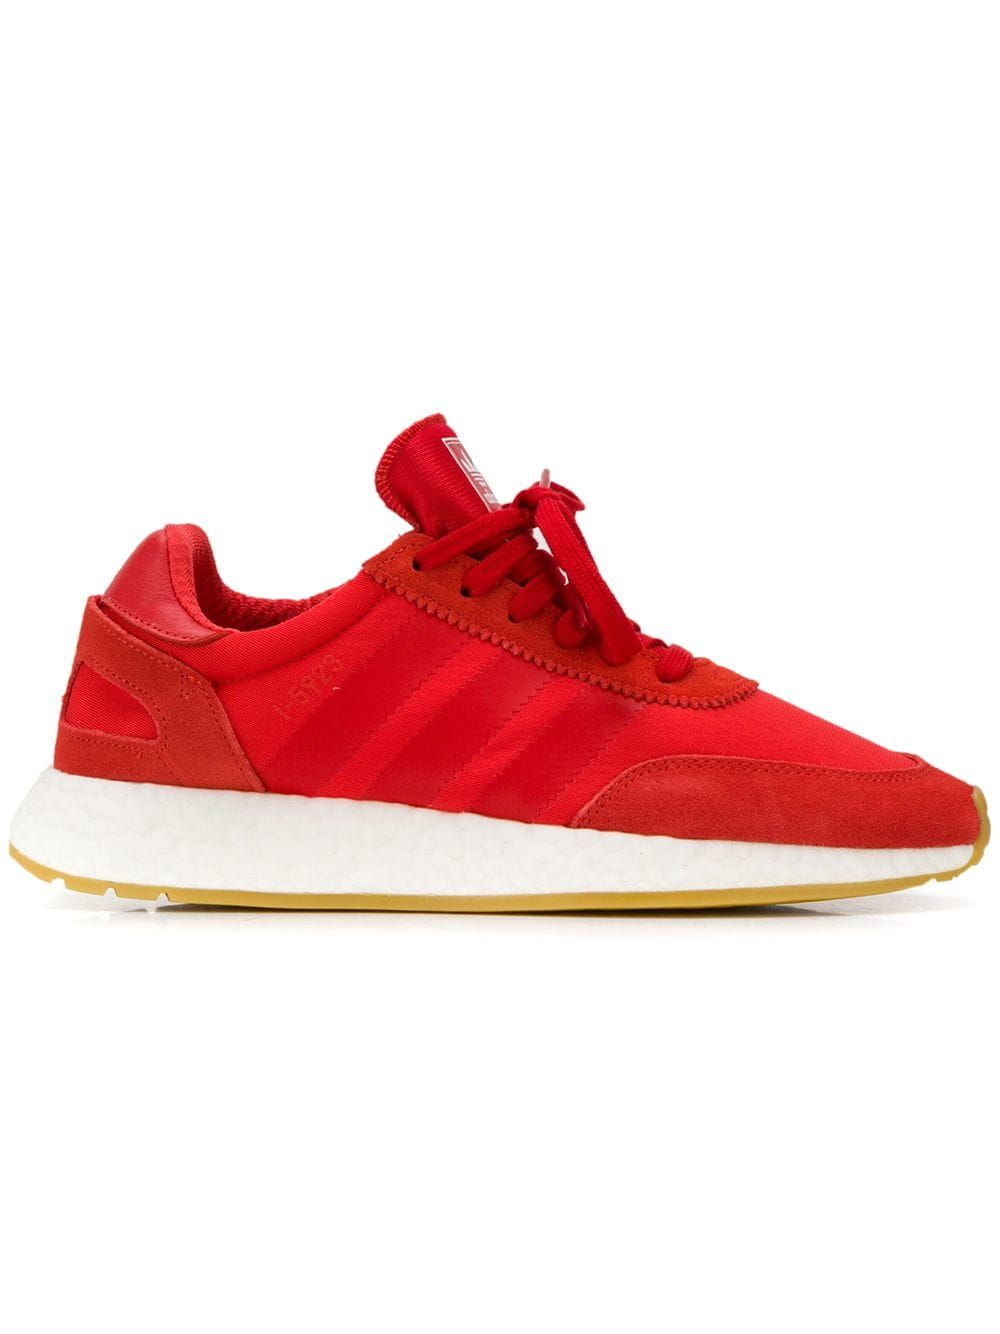 777f383e4fe ADIDAS ORIGINALS ADIDAS ADIDAS ORIGINALS I-5923 SNEAKERS - RED. # adidasoriginals #shoes